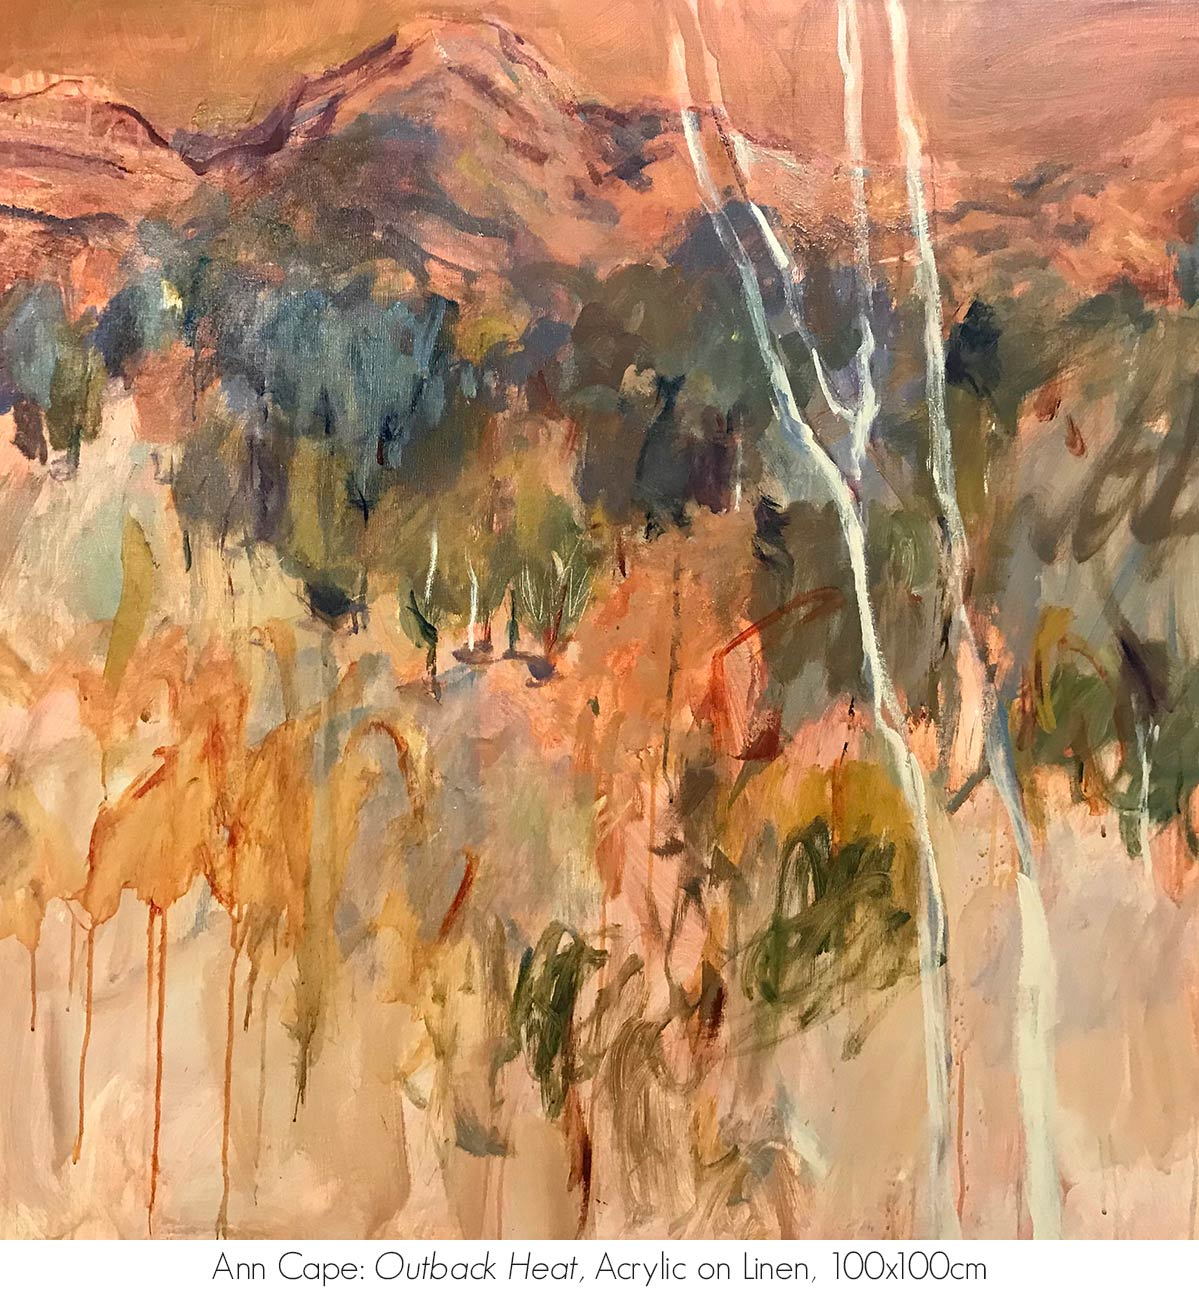 Artsite Galleries Exhibition | REFLECTIONS OF AN ANCIENT LAND: The MacDonnell Ranges | Ann Cape. Exhibition is Open June - July 2020. Saturdays and Sundays 11am - 5pm and By Appointment Monday - Friday.